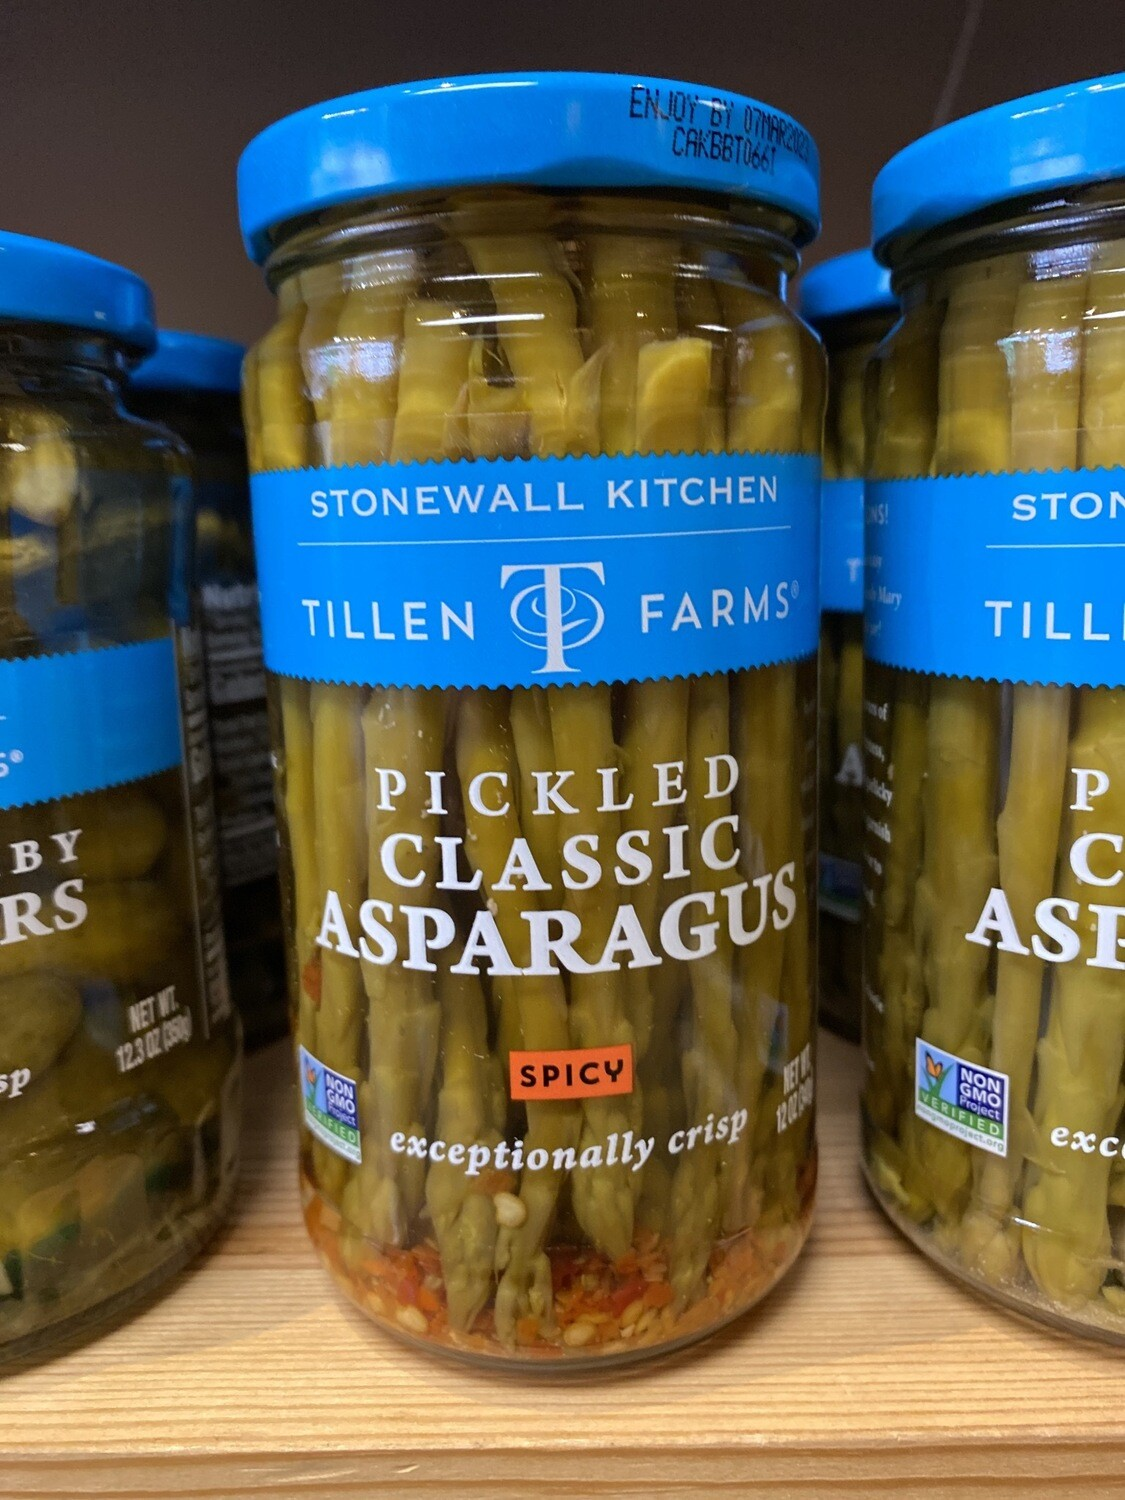 Tillen Farms Pickled Spicy Classic Asparagus